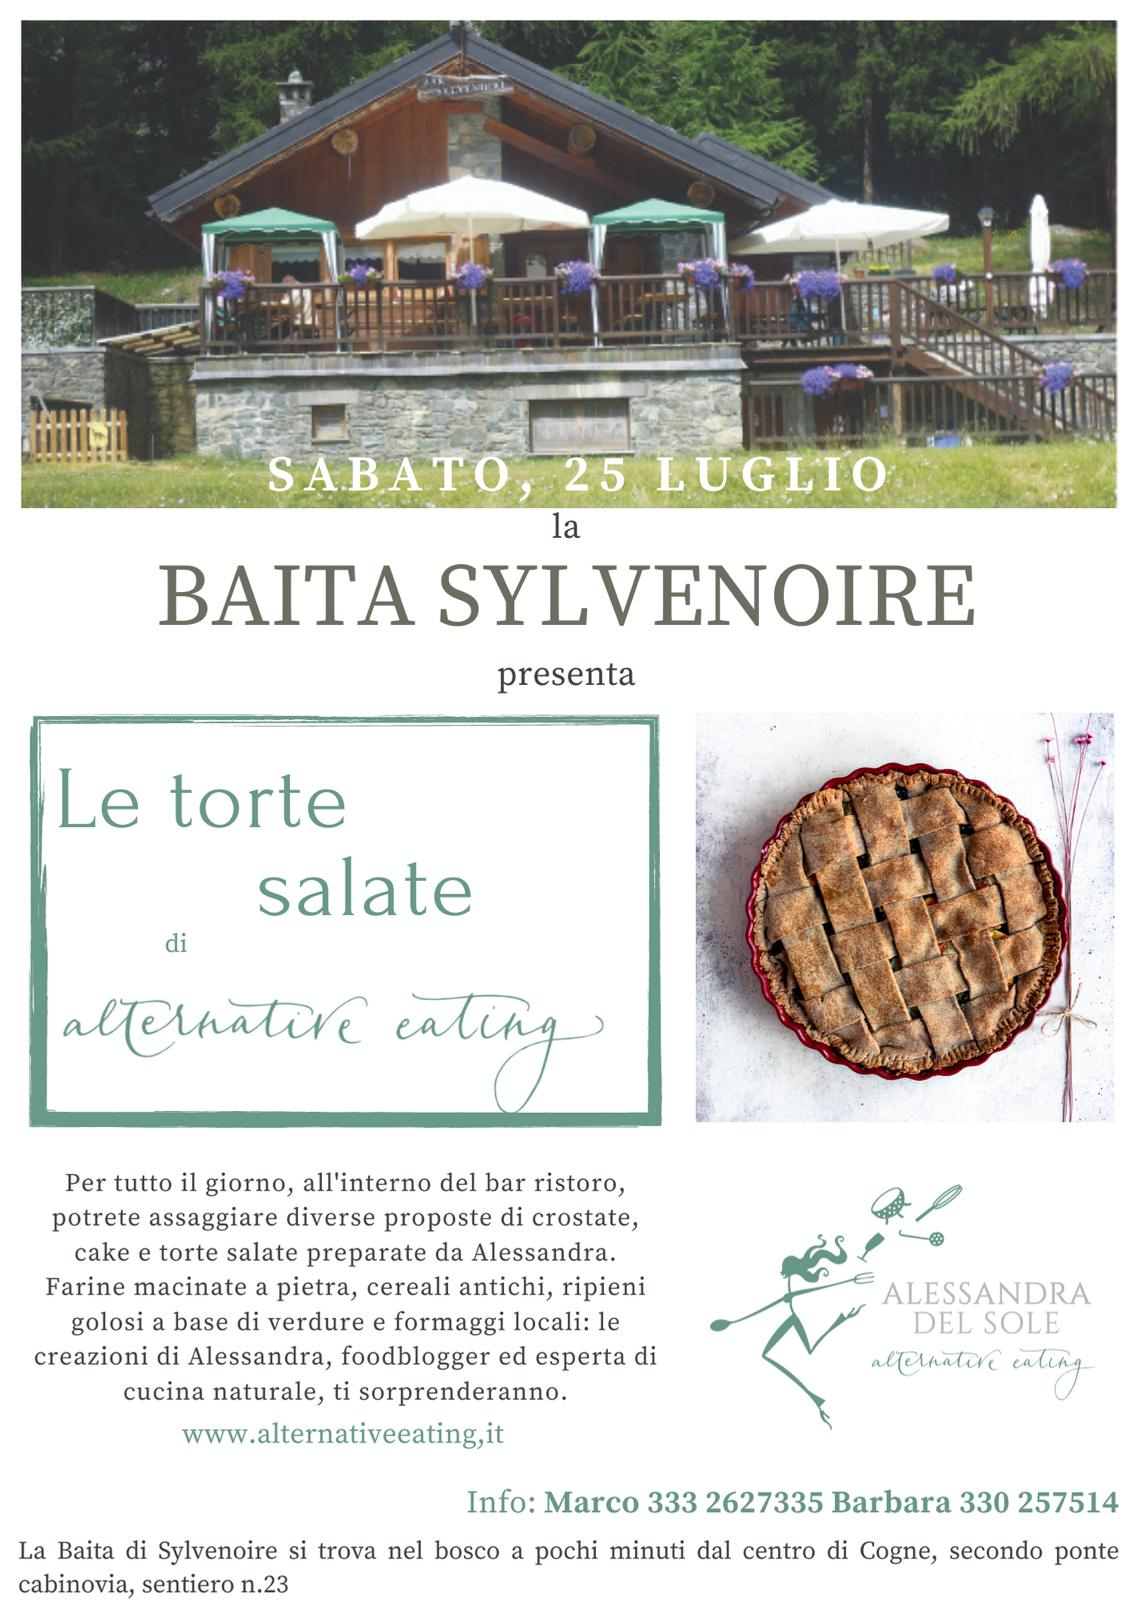 Le torte salate di alternative eating